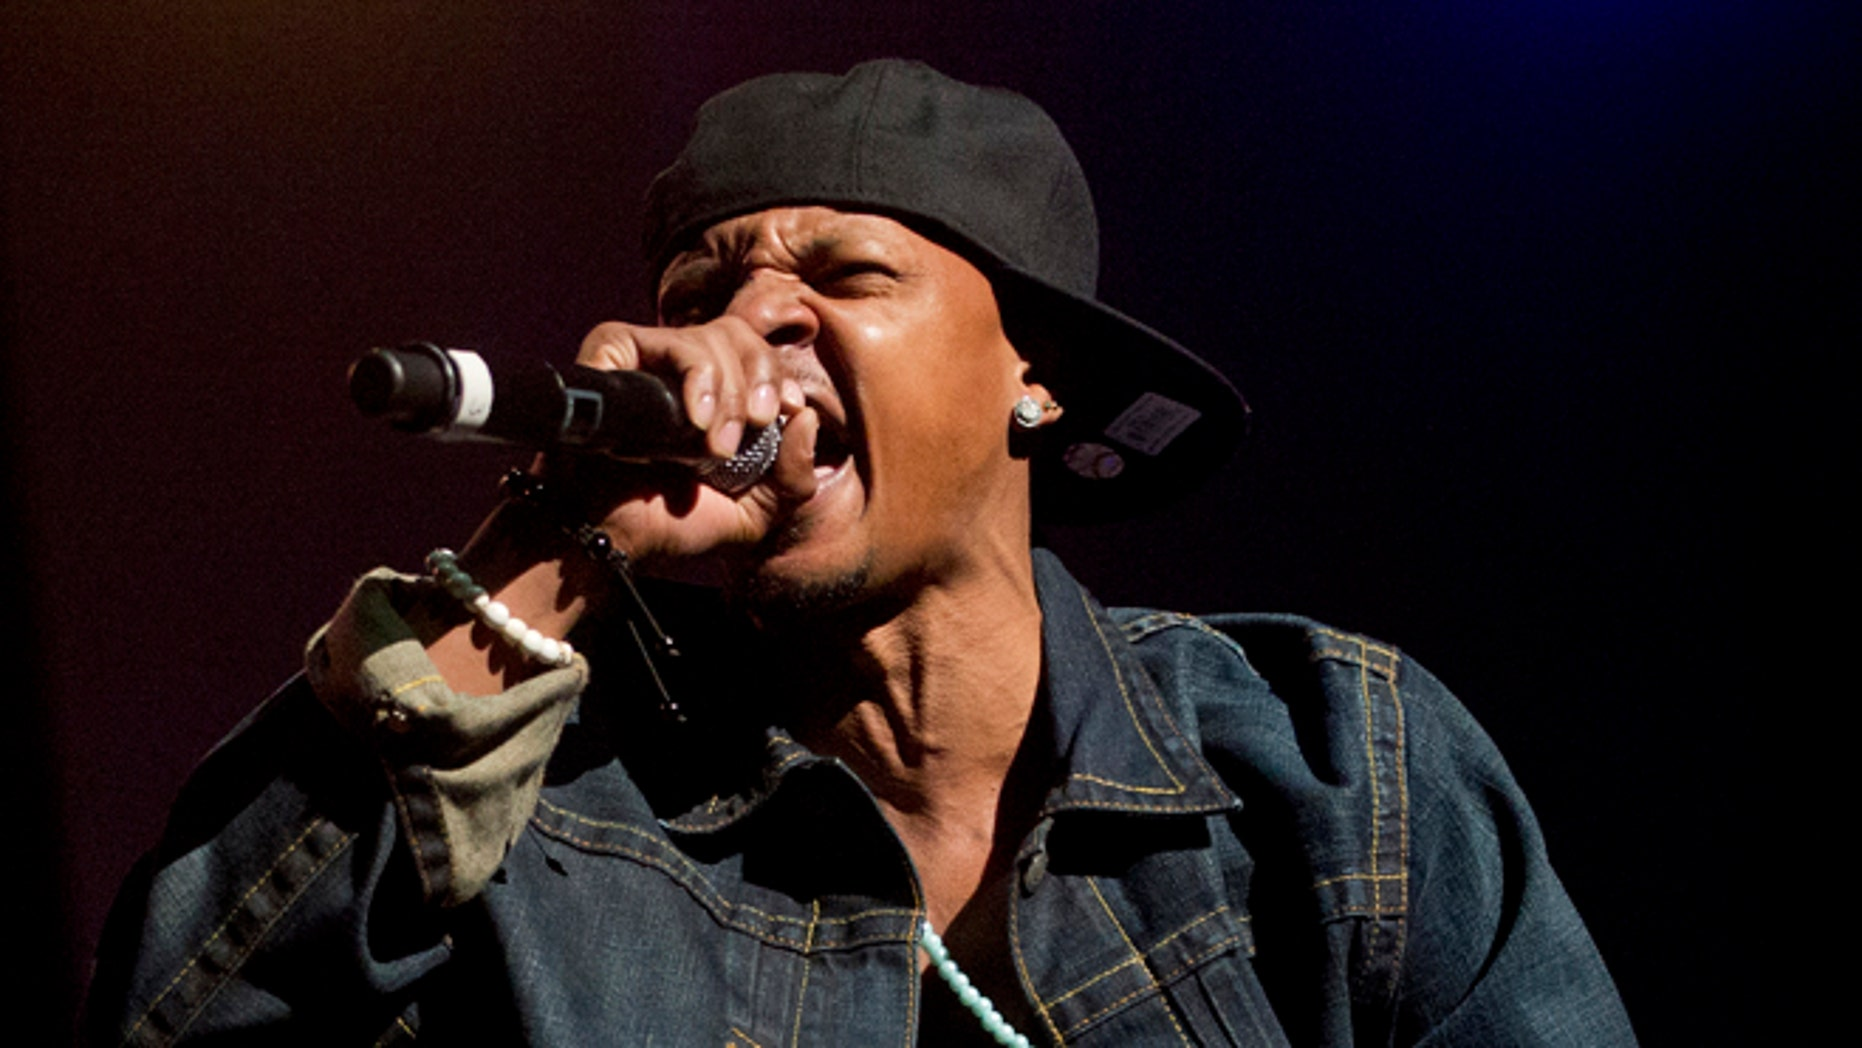 Feb. 23, 2013: In this file photo, Chris Kelly of Kris Kross performs on stage at the Fox Theatre in Atlanta during the So So Def 20th Anniversary Concert.